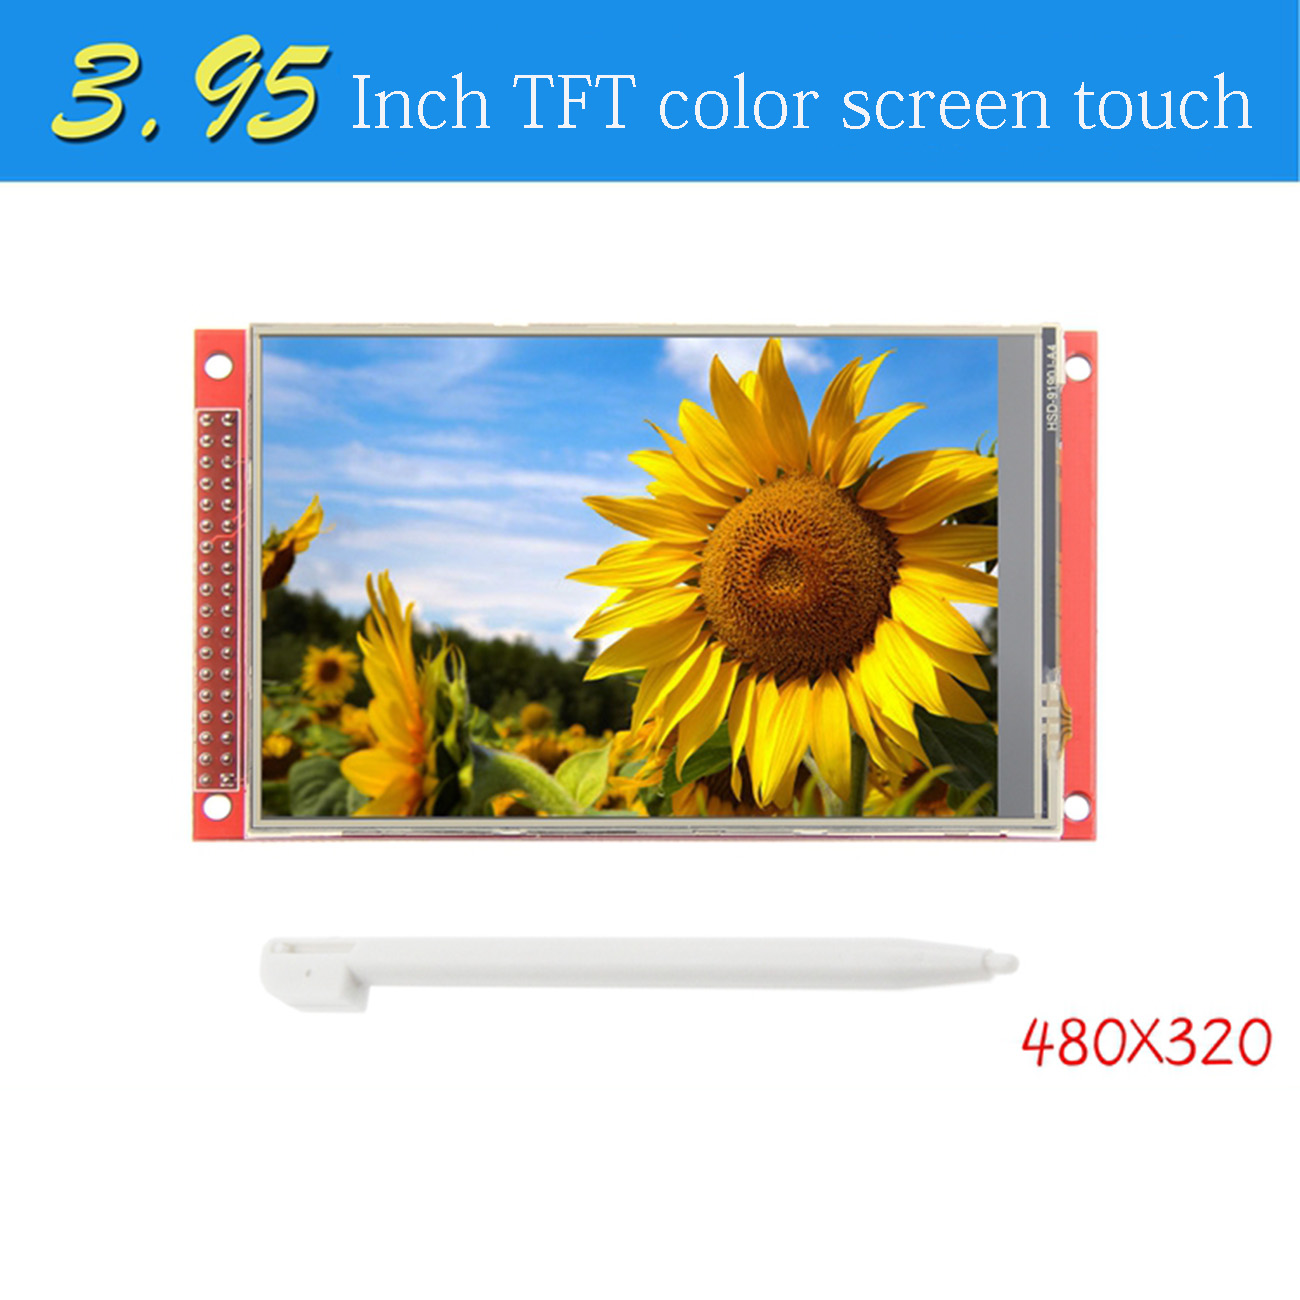 "3.95 inch""/4.0 inch"" inch 320*480 ST7796S TFT Color LCD Display Module Screen with Touch Panel For Arduino UNO Mega2560 8/16 Bit"